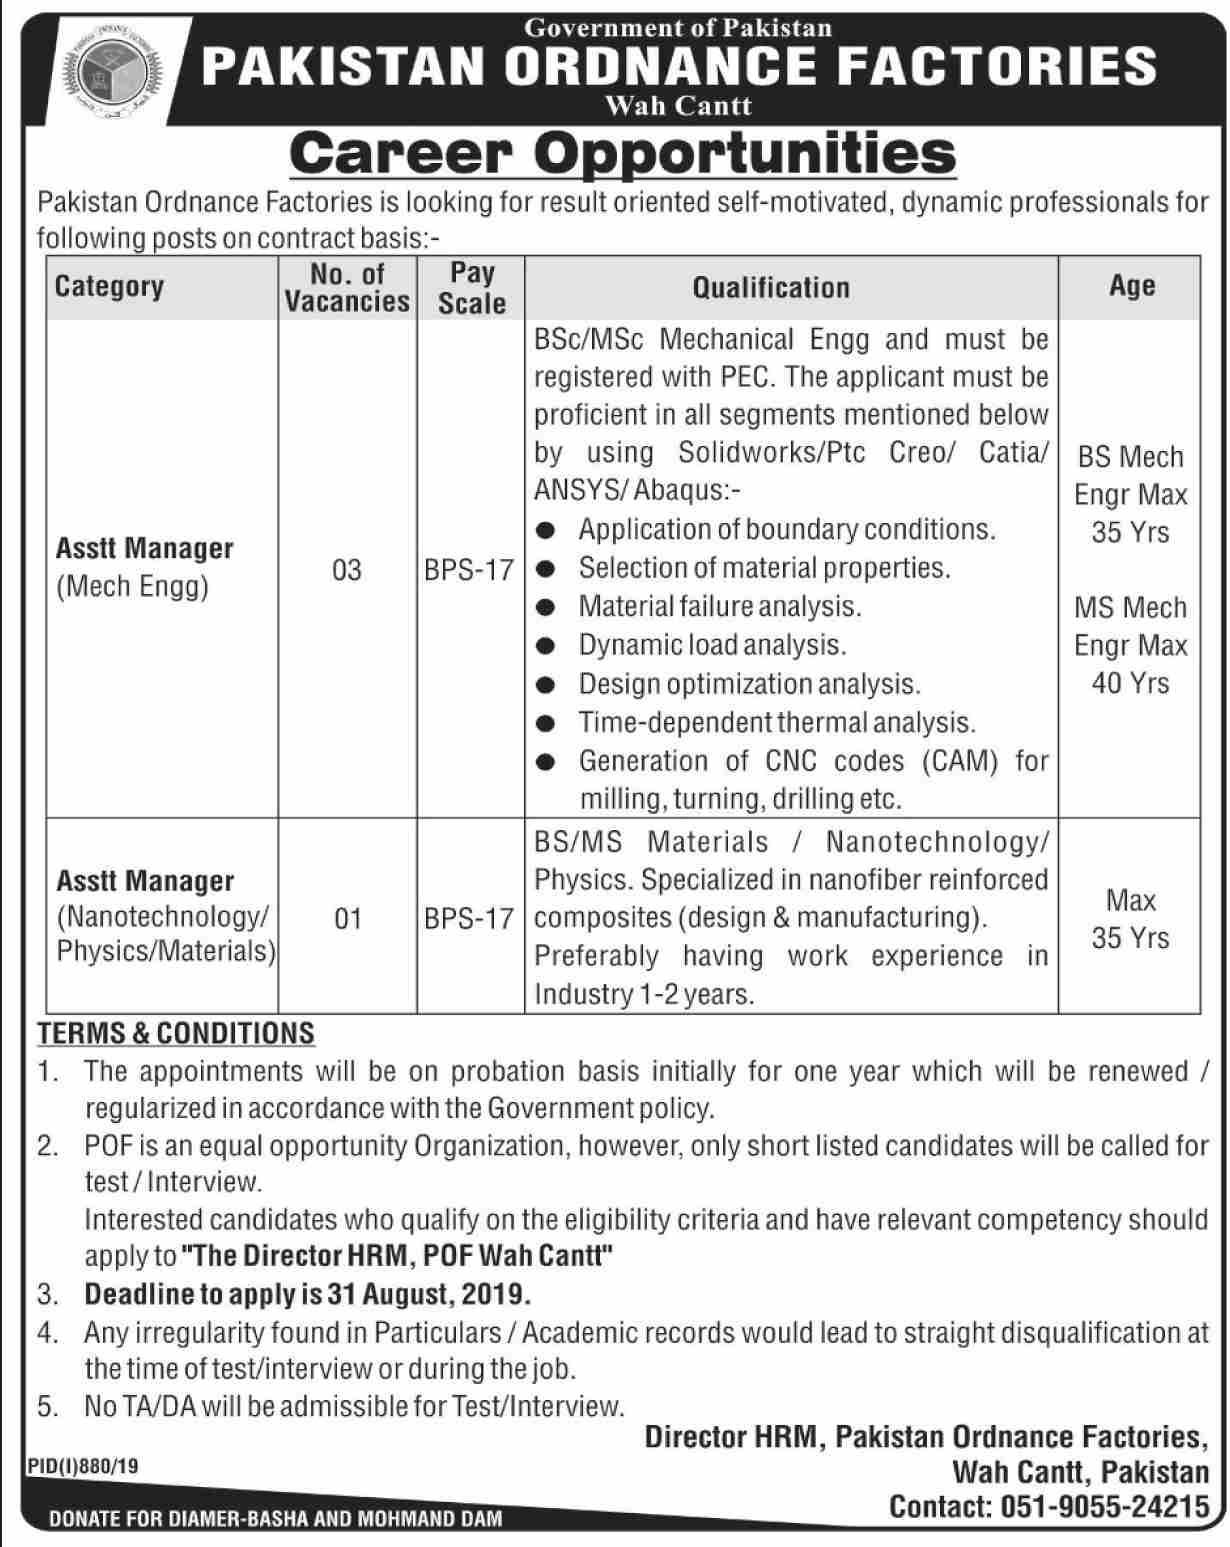 Advertisements 2 for Wah Cantt Jobs